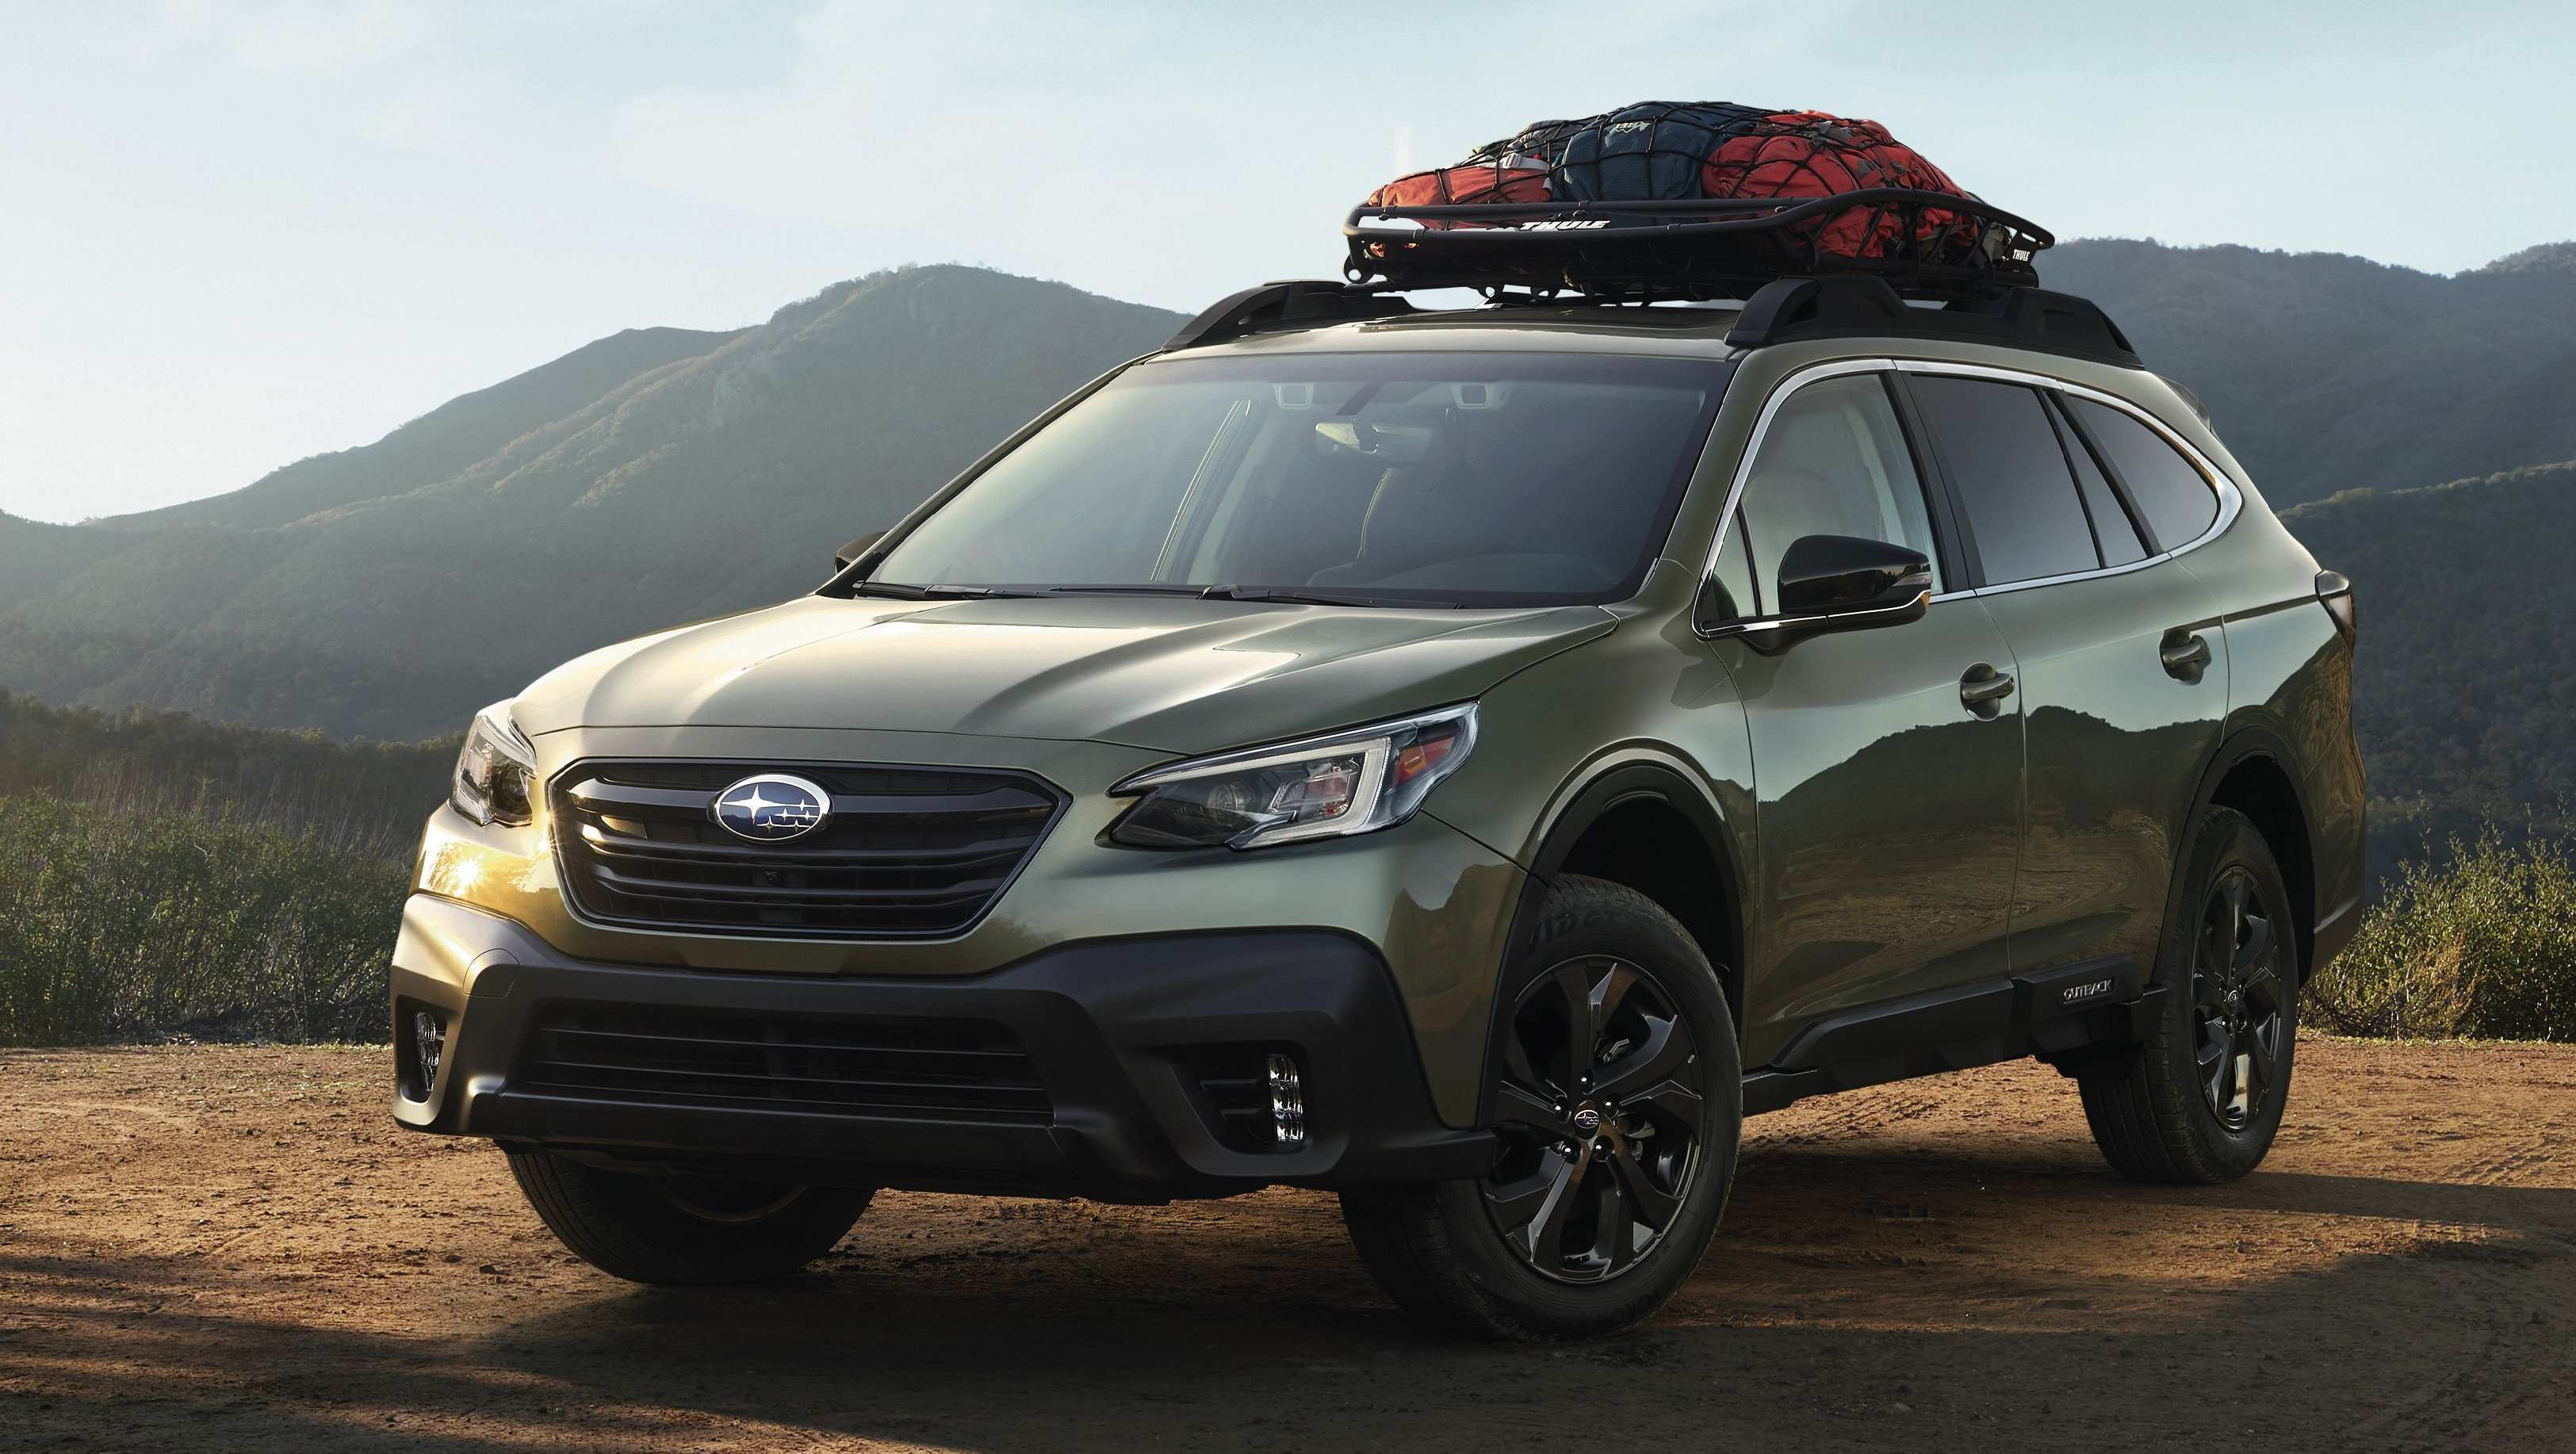 74 All New All New Subaru Outback 2020 Photos